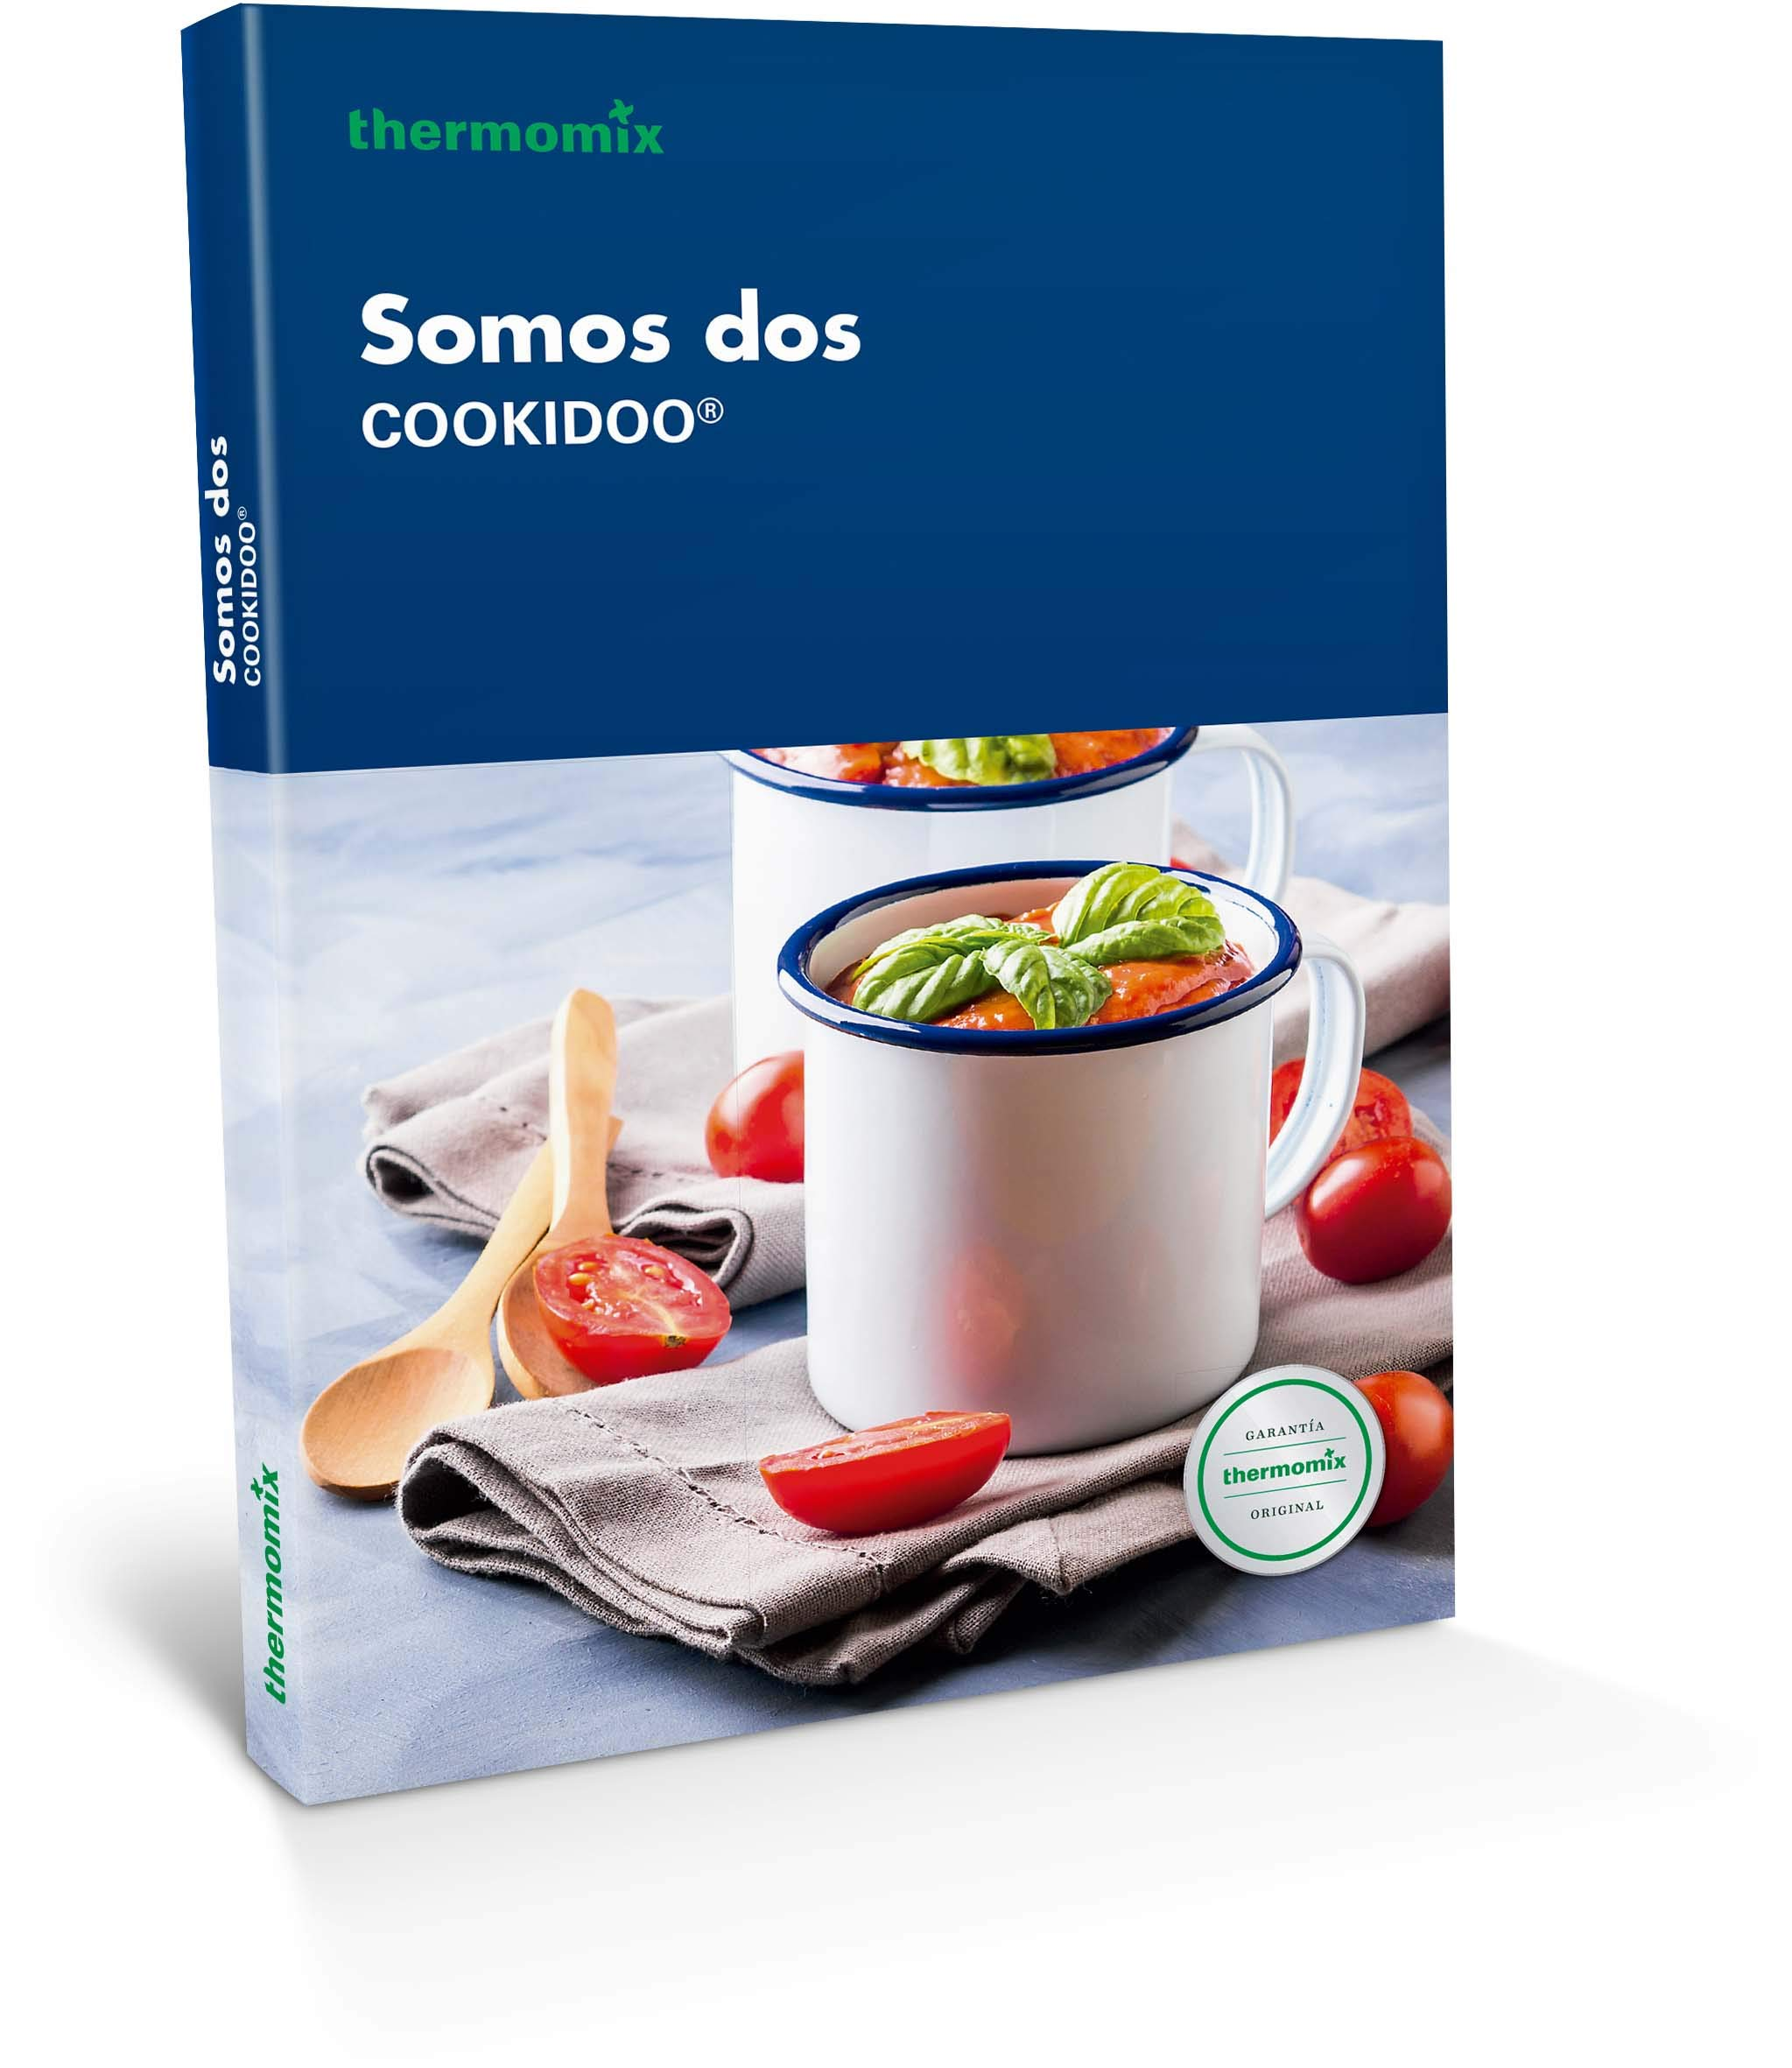 Somos dos (Cookidoo): Amazon.es: Vorwerk Thermomix: Libros